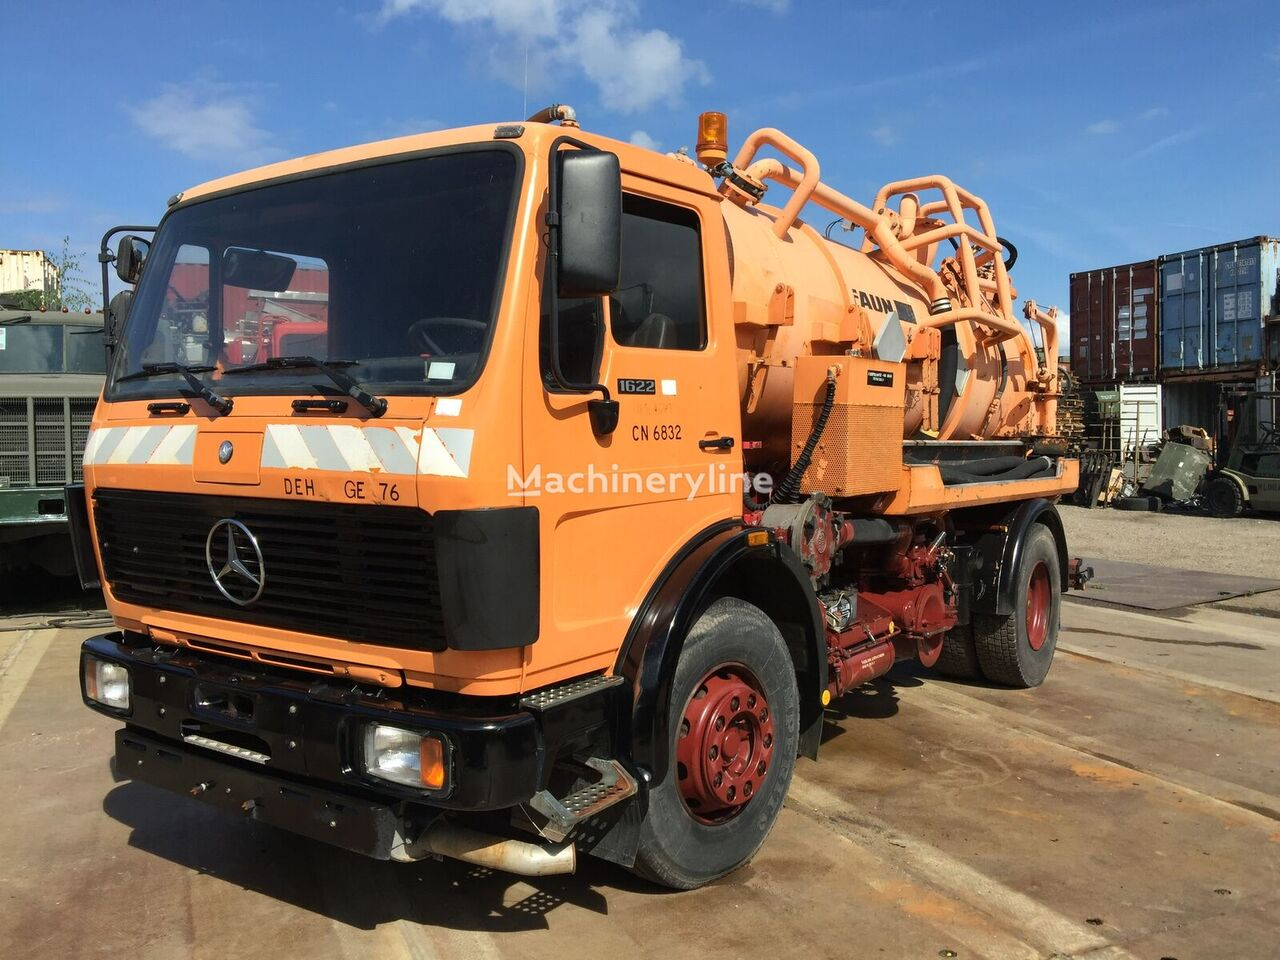 MERCEDES-BENZ 1622 Sludge vacuum truck